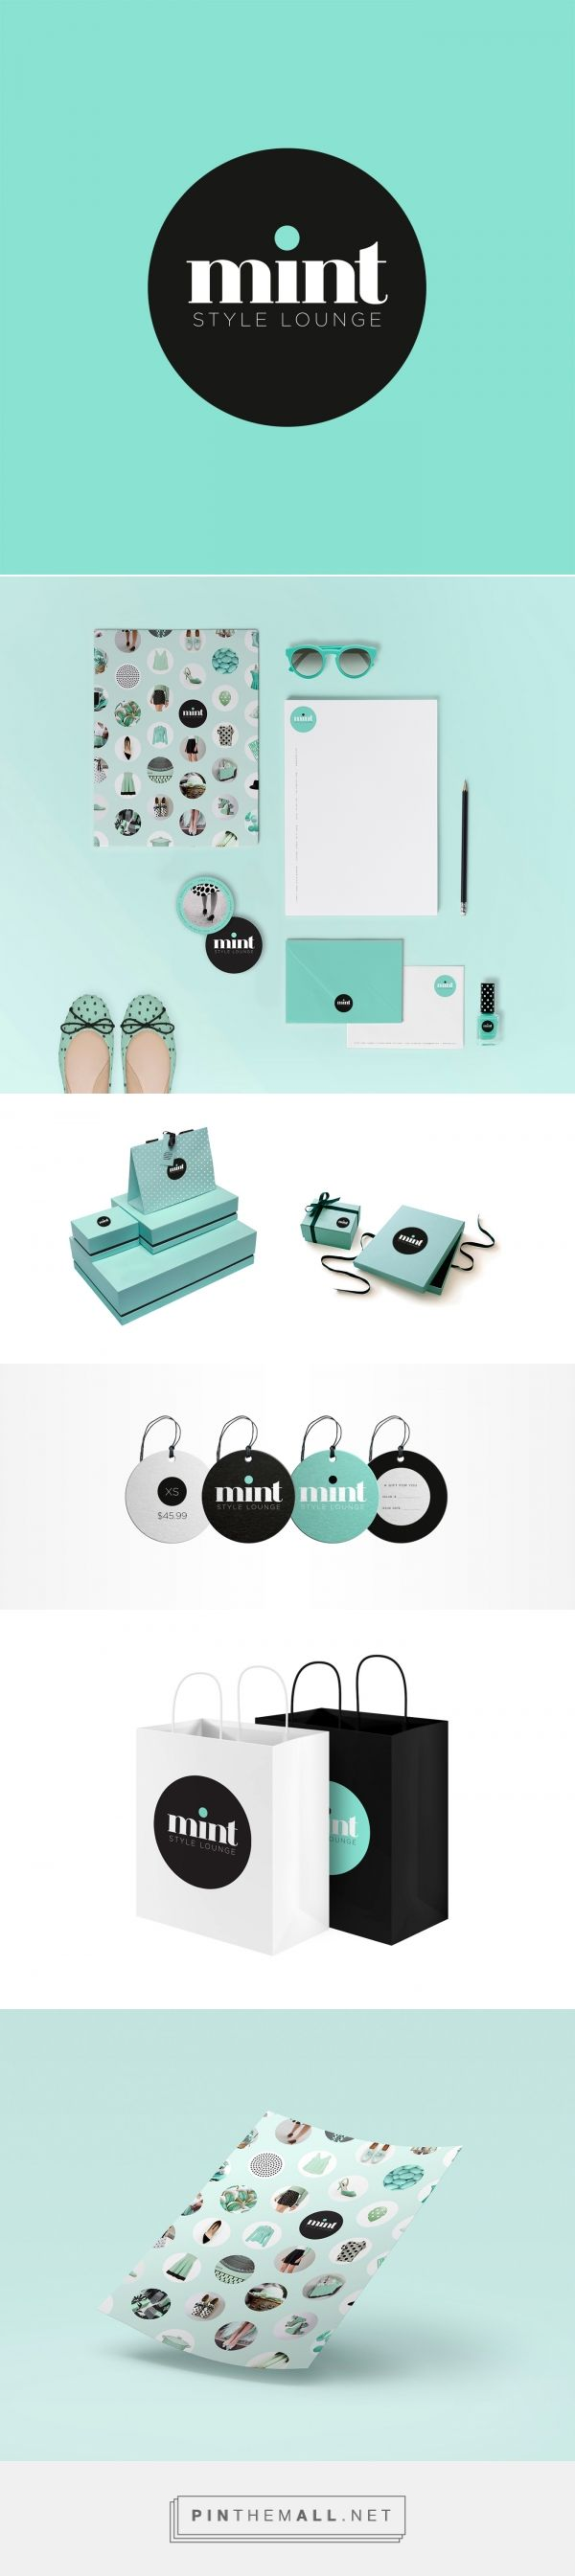 Mint Fashion Branding by Carmen Virginia Grisolía